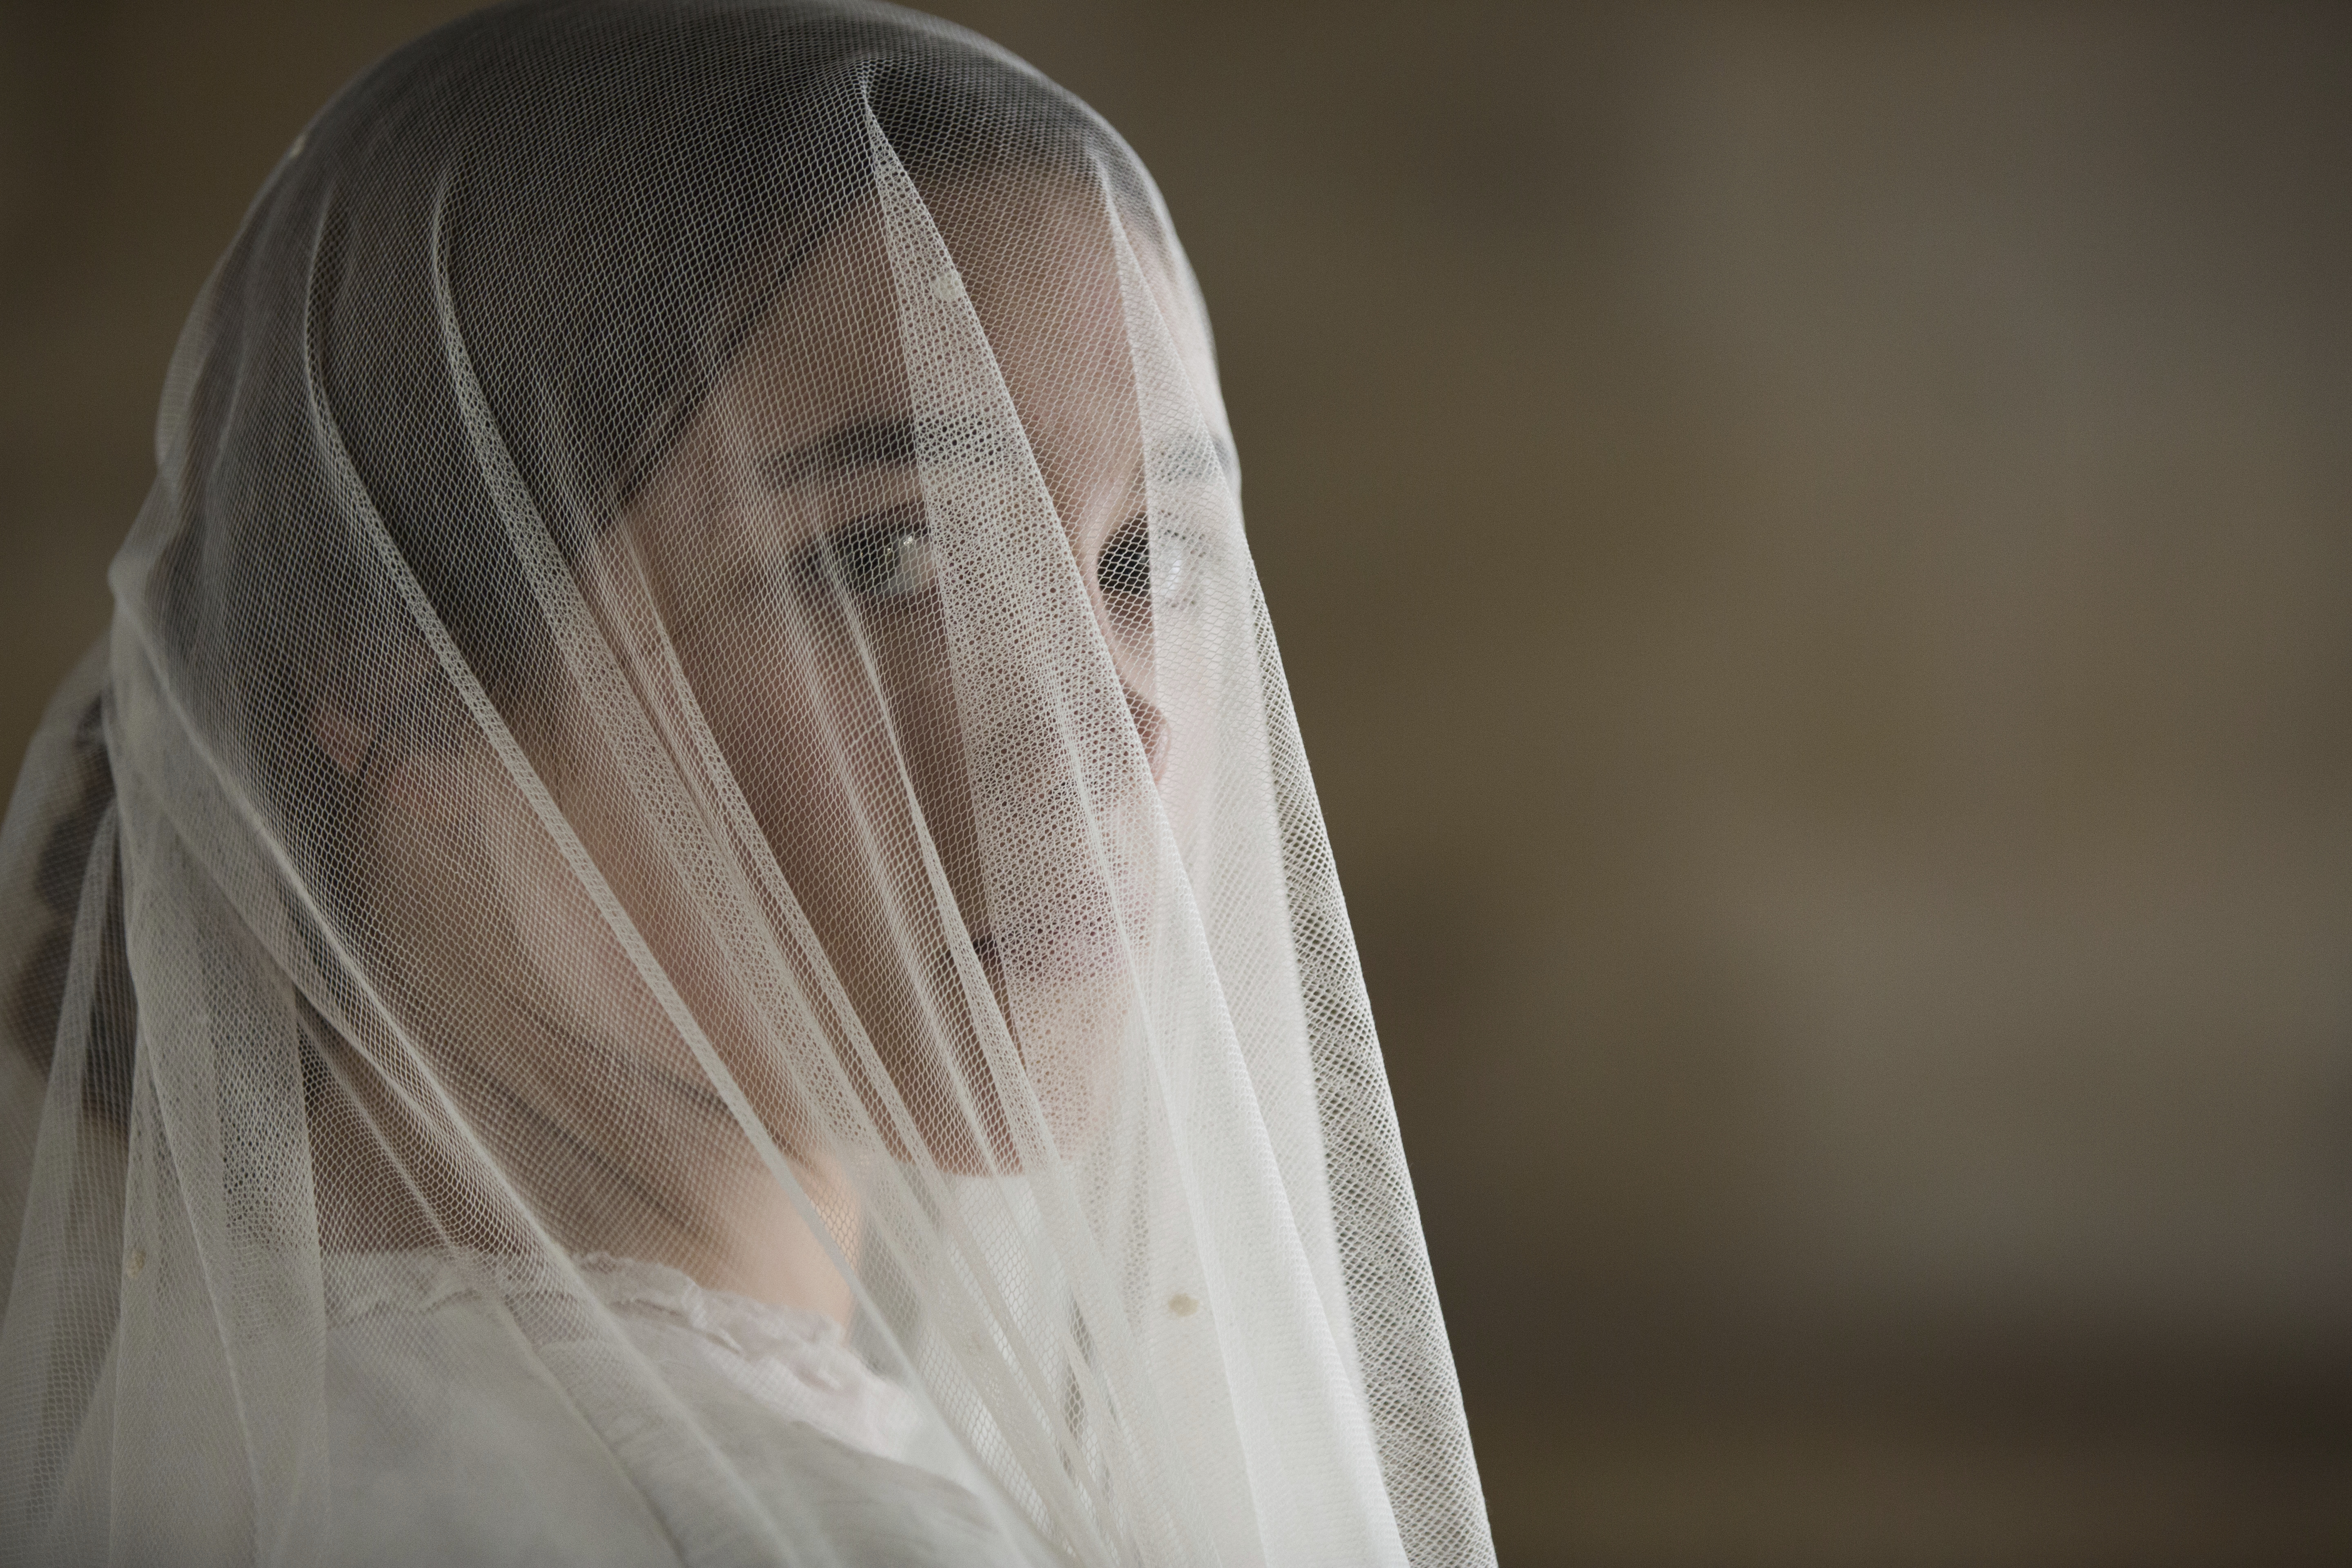 Florence Pugh as the title character in ´Lady Macbeth´